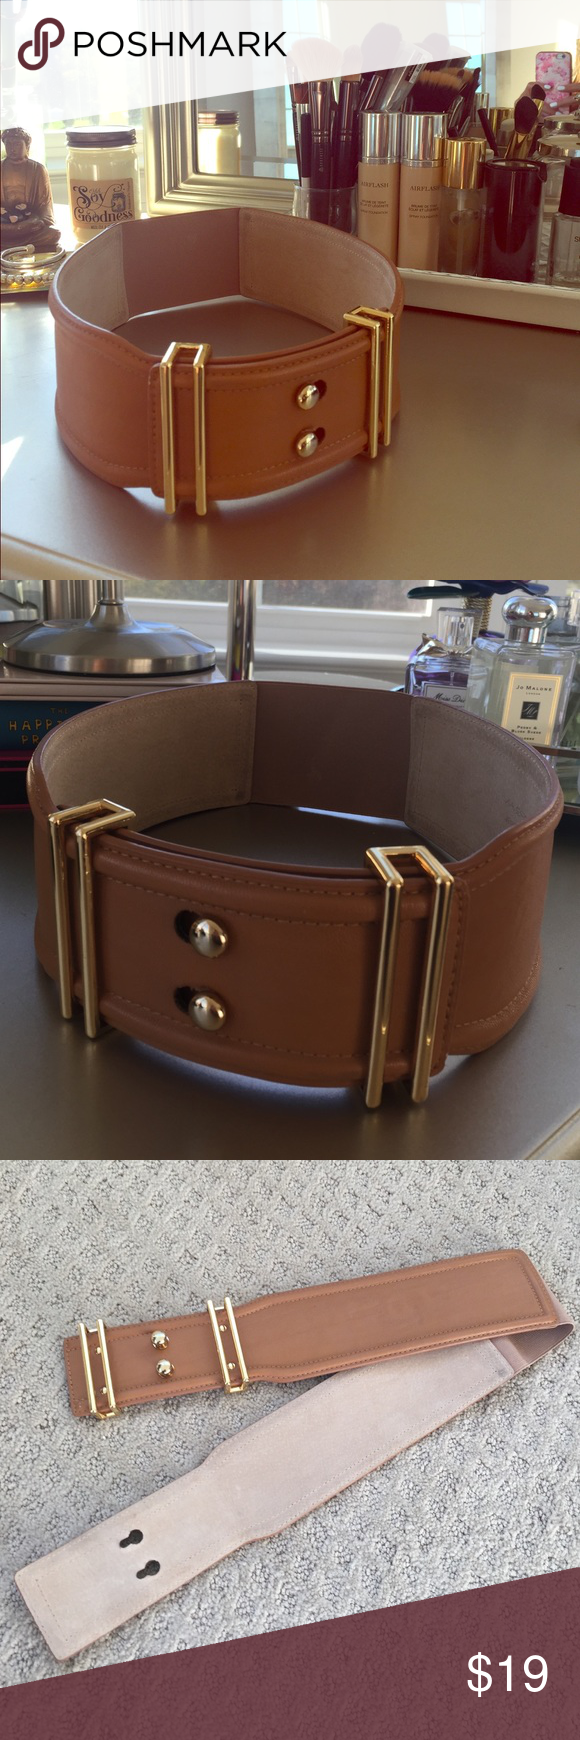 VIA SPIGA WAIST CINCHER BELT LEATHER Bought at Nordstroms for over $200. Gold hardware, camel color leather, elastic band center back. Last photo shows flaws from wear but definitely not noticeable once worn.  VIA SPIGA Accessories Belts